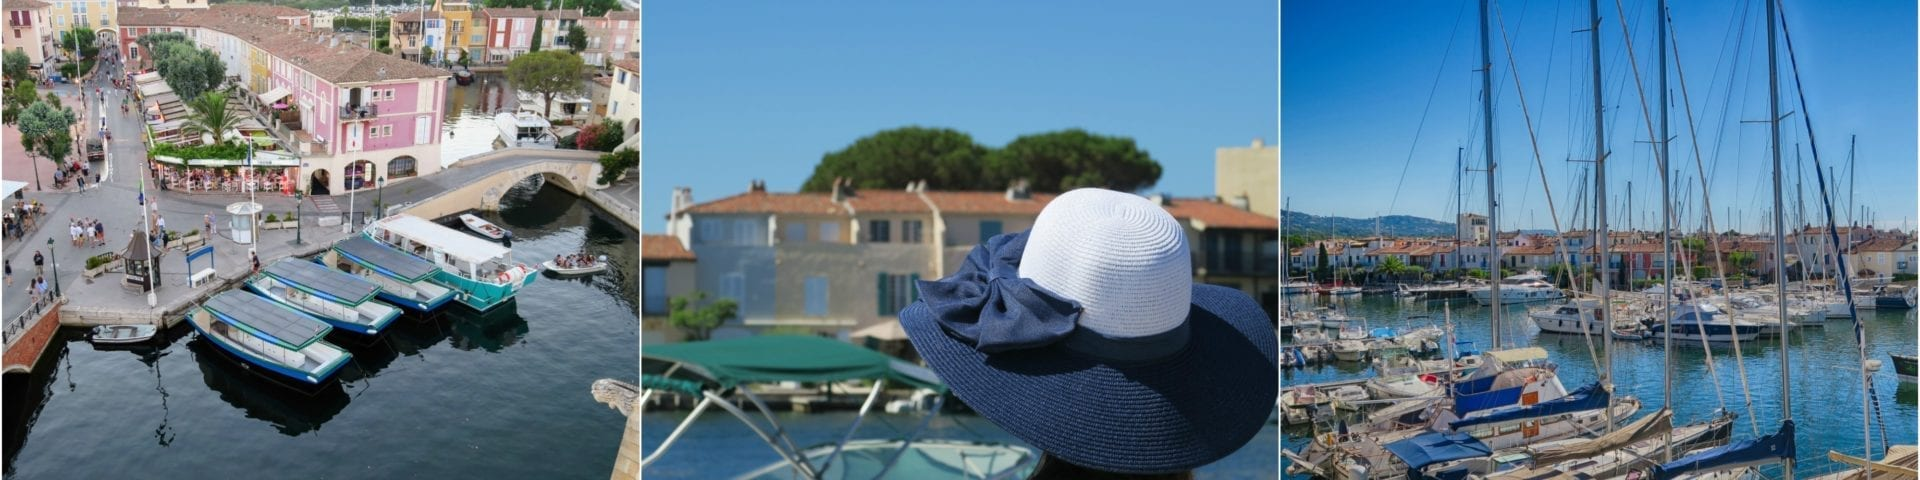 Port Grimaud A Quick Guide To The Venice Of France